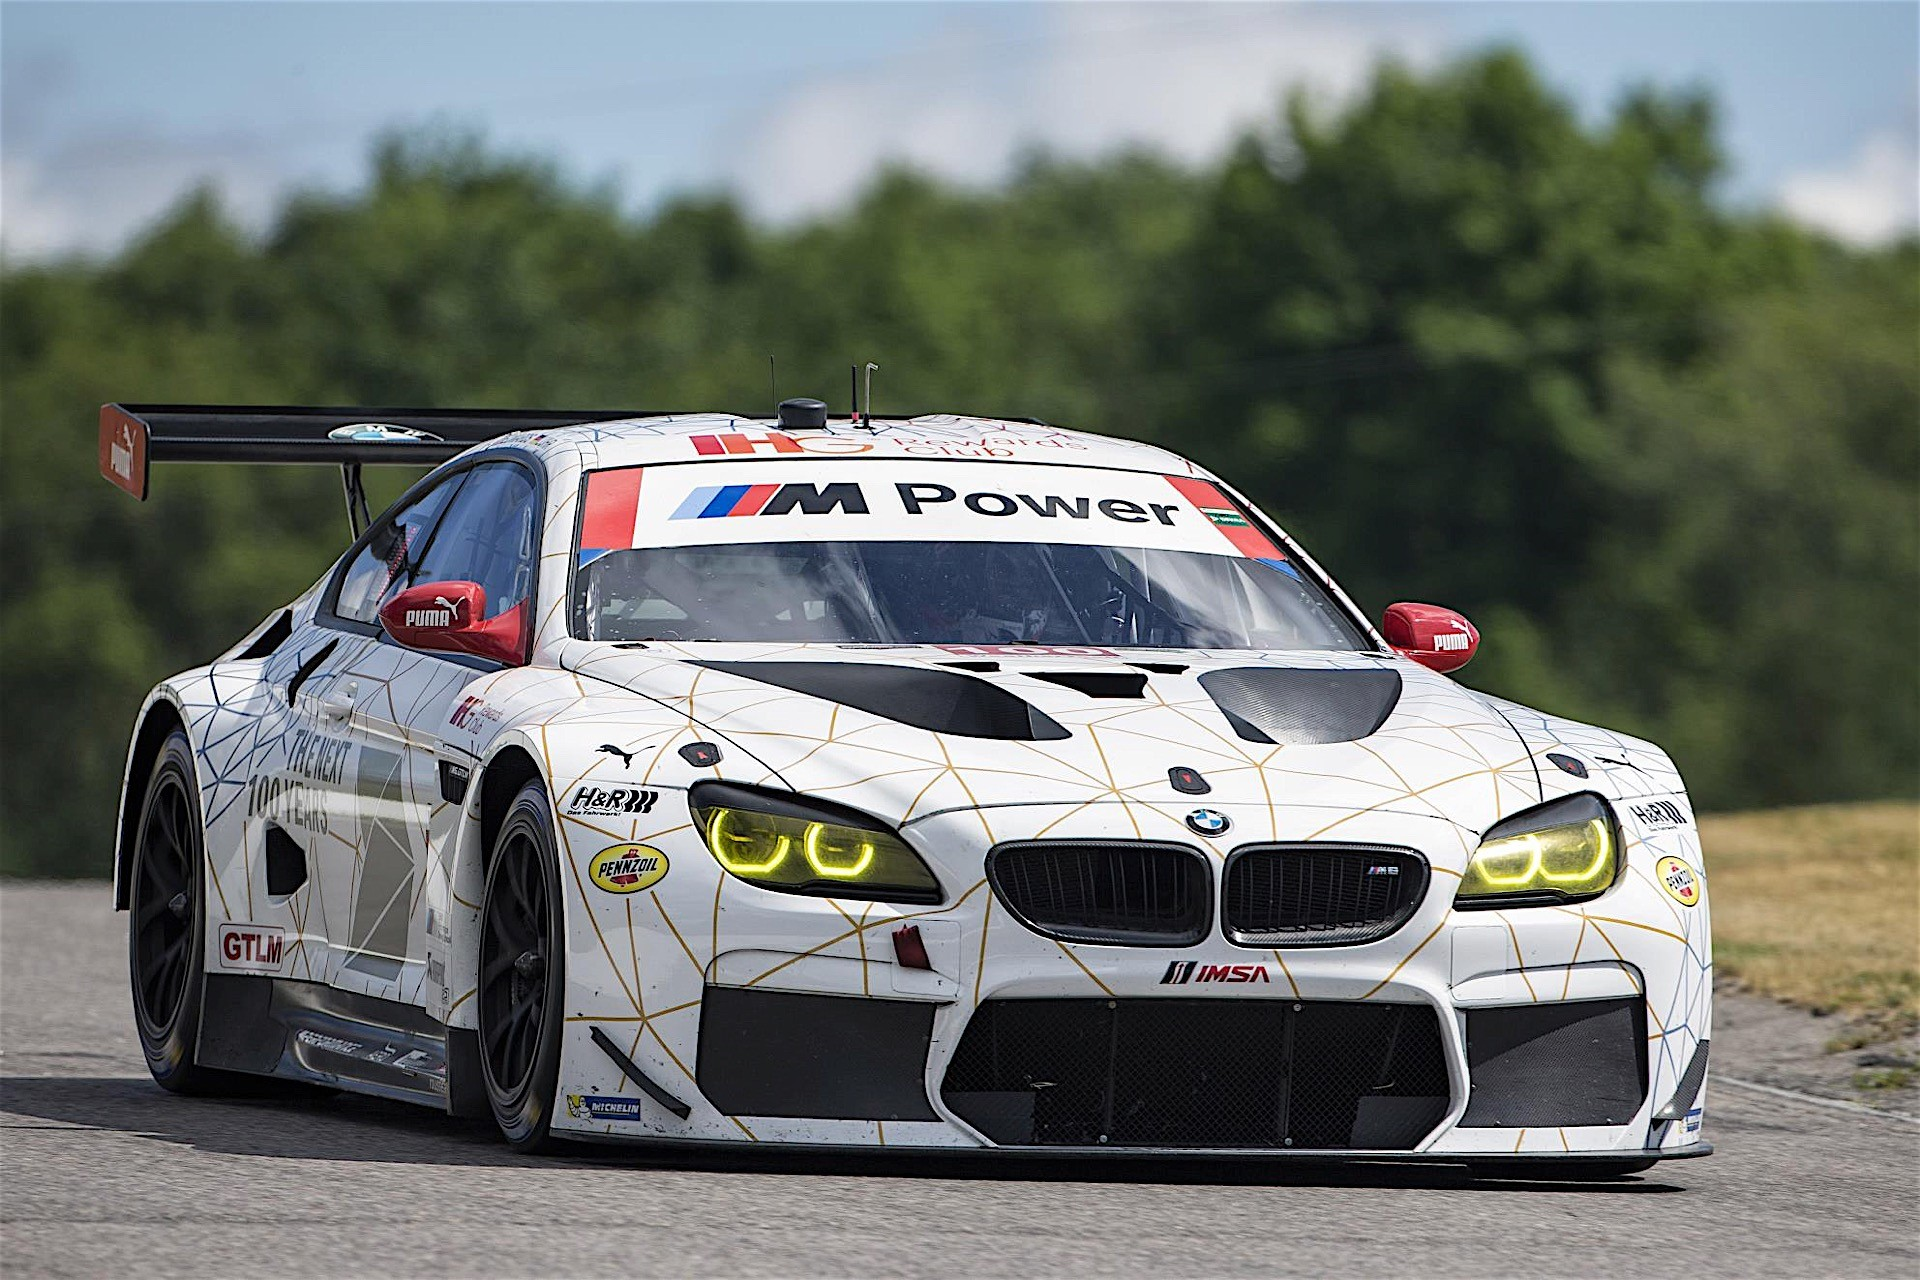 Bmw Will Return In The World Endurance Championship With A